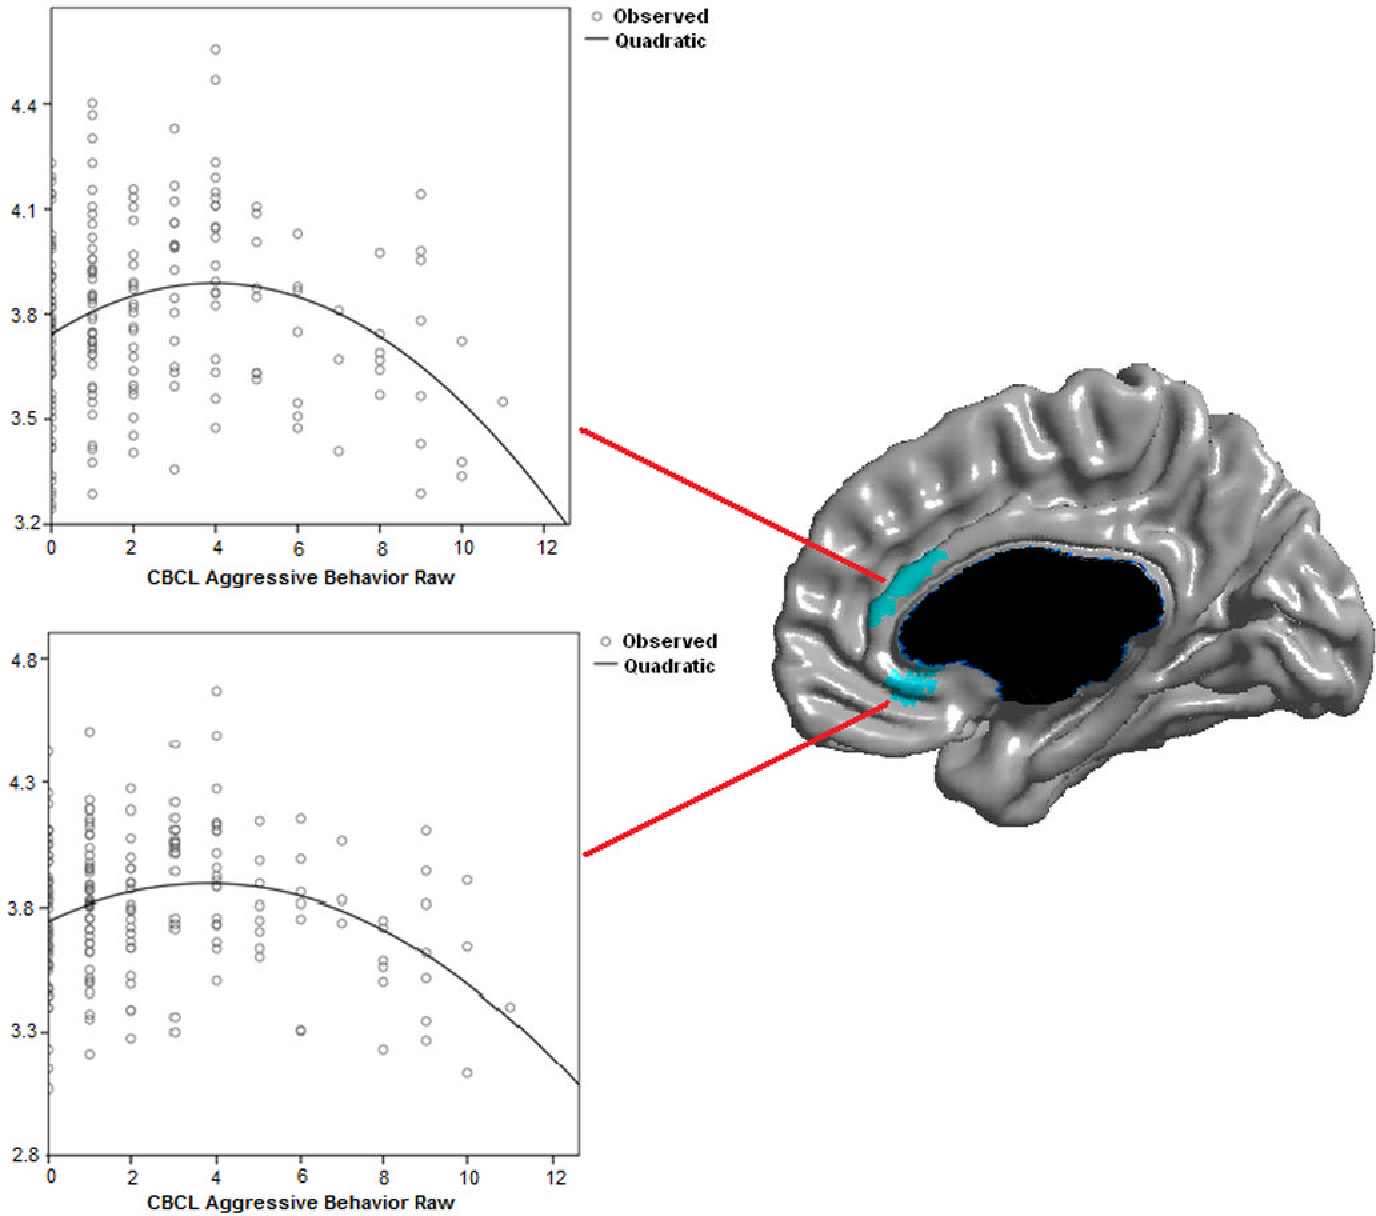 Figure 2. Scatterplots of CBCL Aggressive Behavior raw scores against local cortical thickness (mm). Controlled for age, gender, scanner and total brain volume.